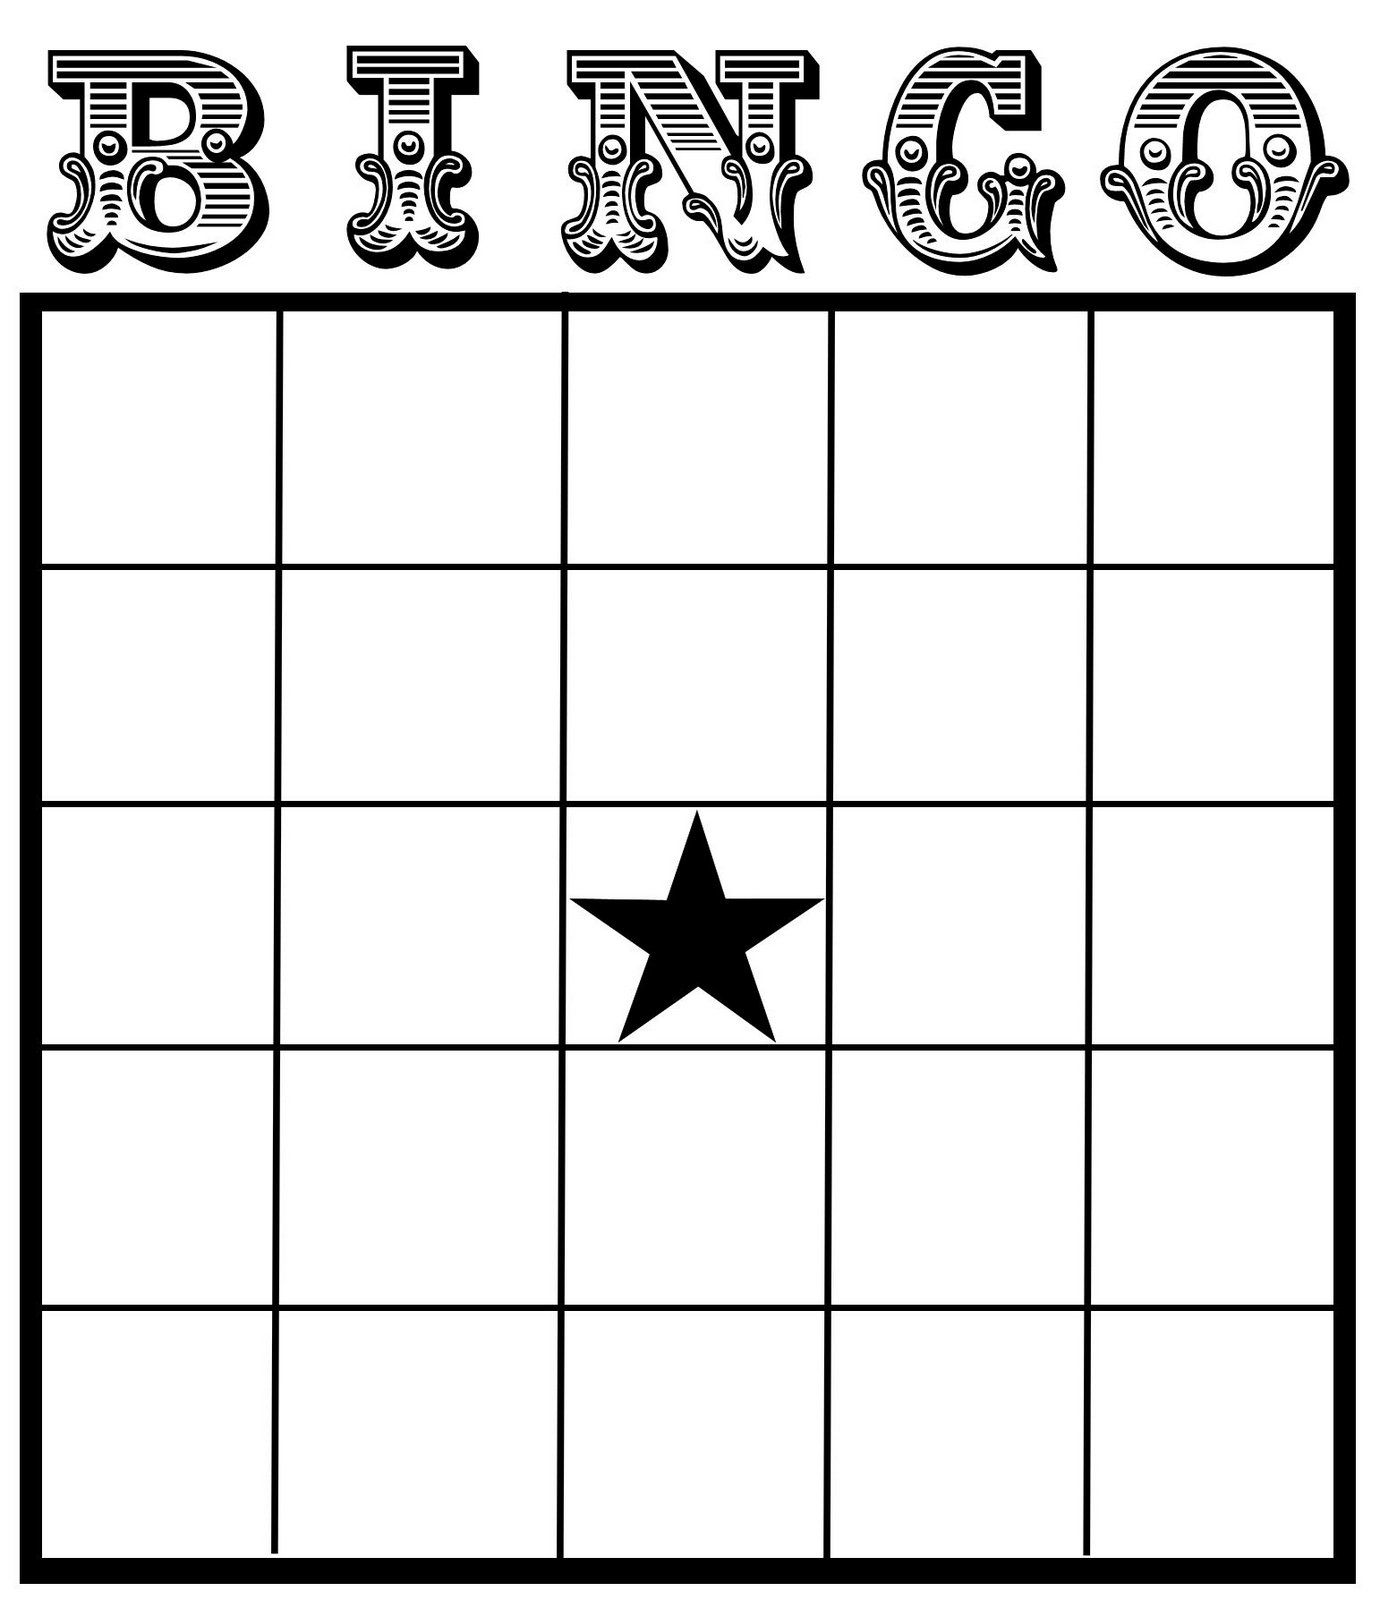 blank bingo card template word